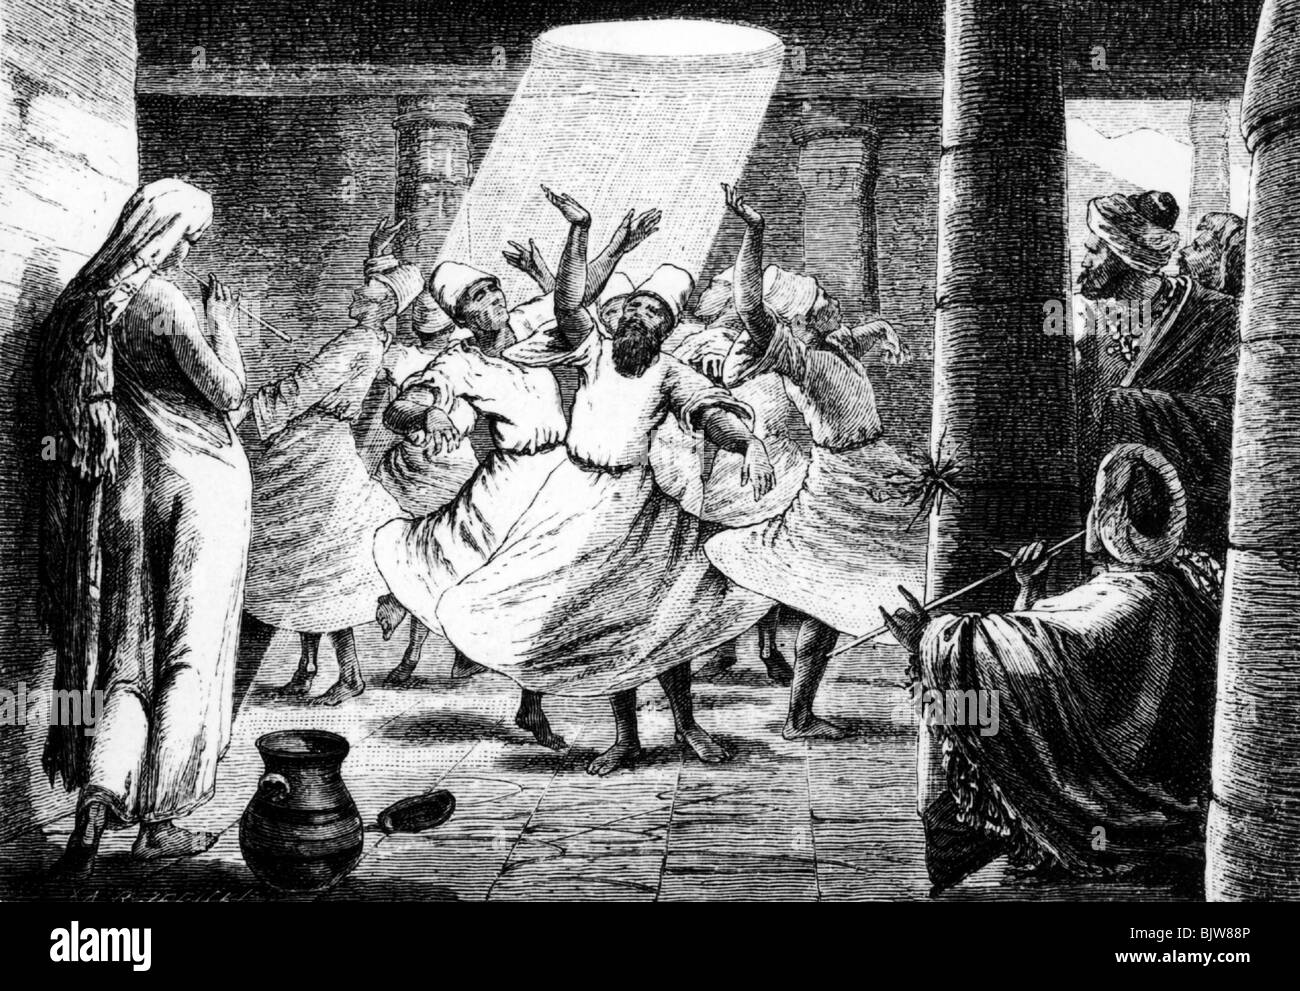 religion, Islam, dervish, dance, dances, wood engraving, after drawing by Jerick, 19th century, historic, historical, - Stock Image